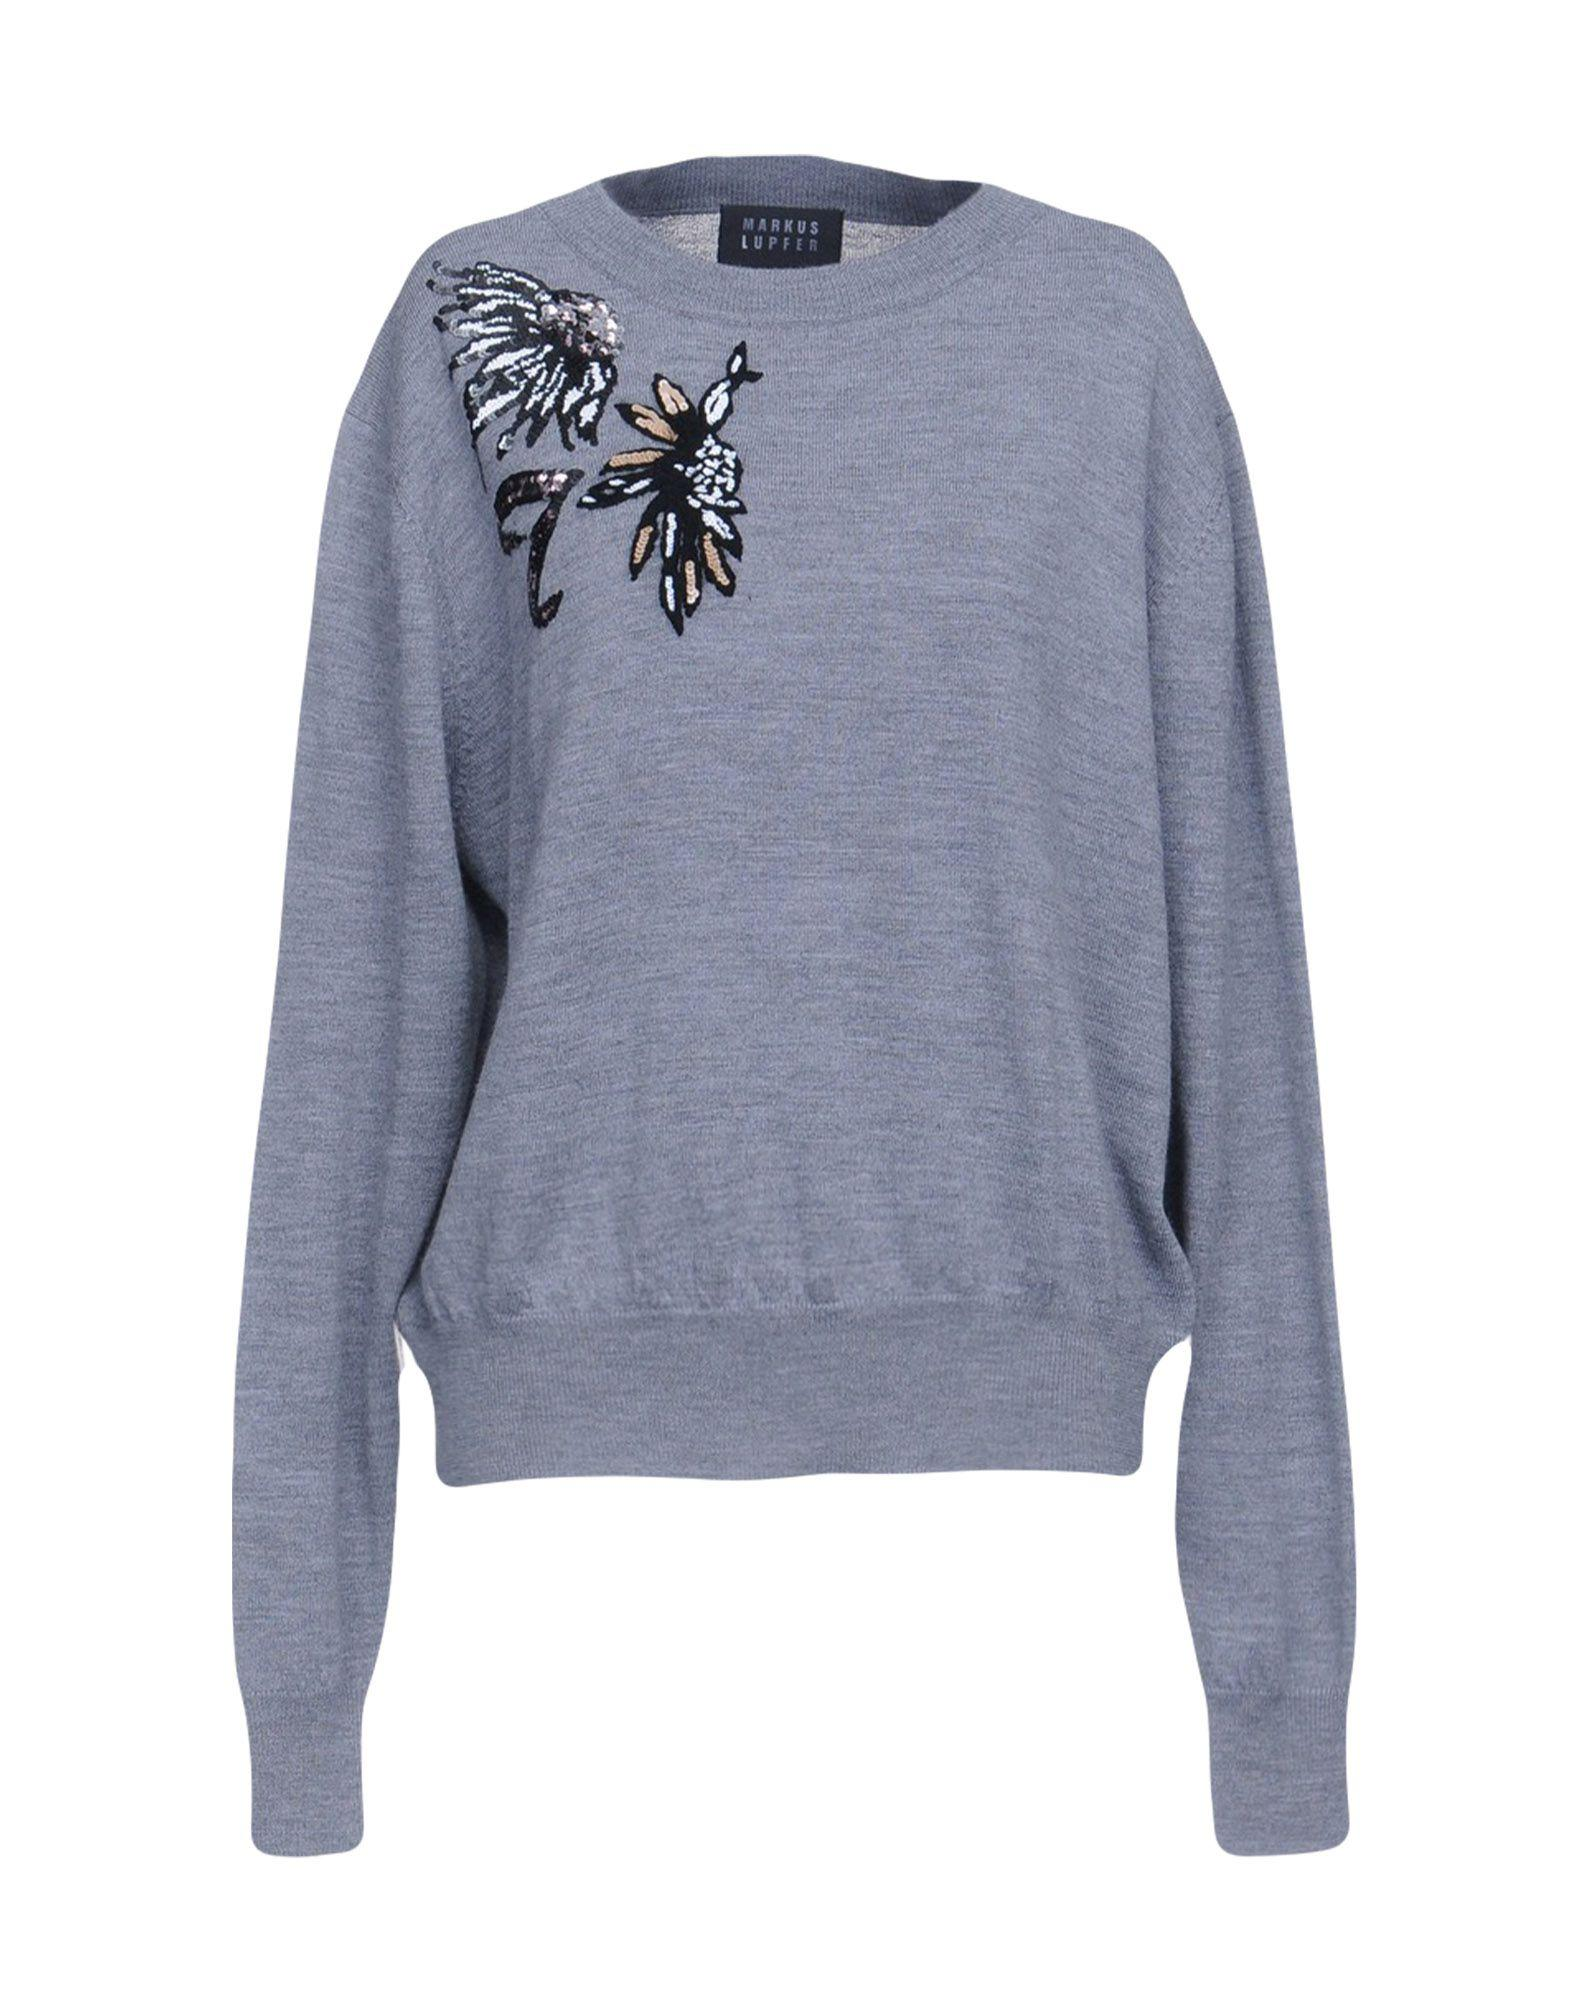 Markus Lupfer Sweater In Grey